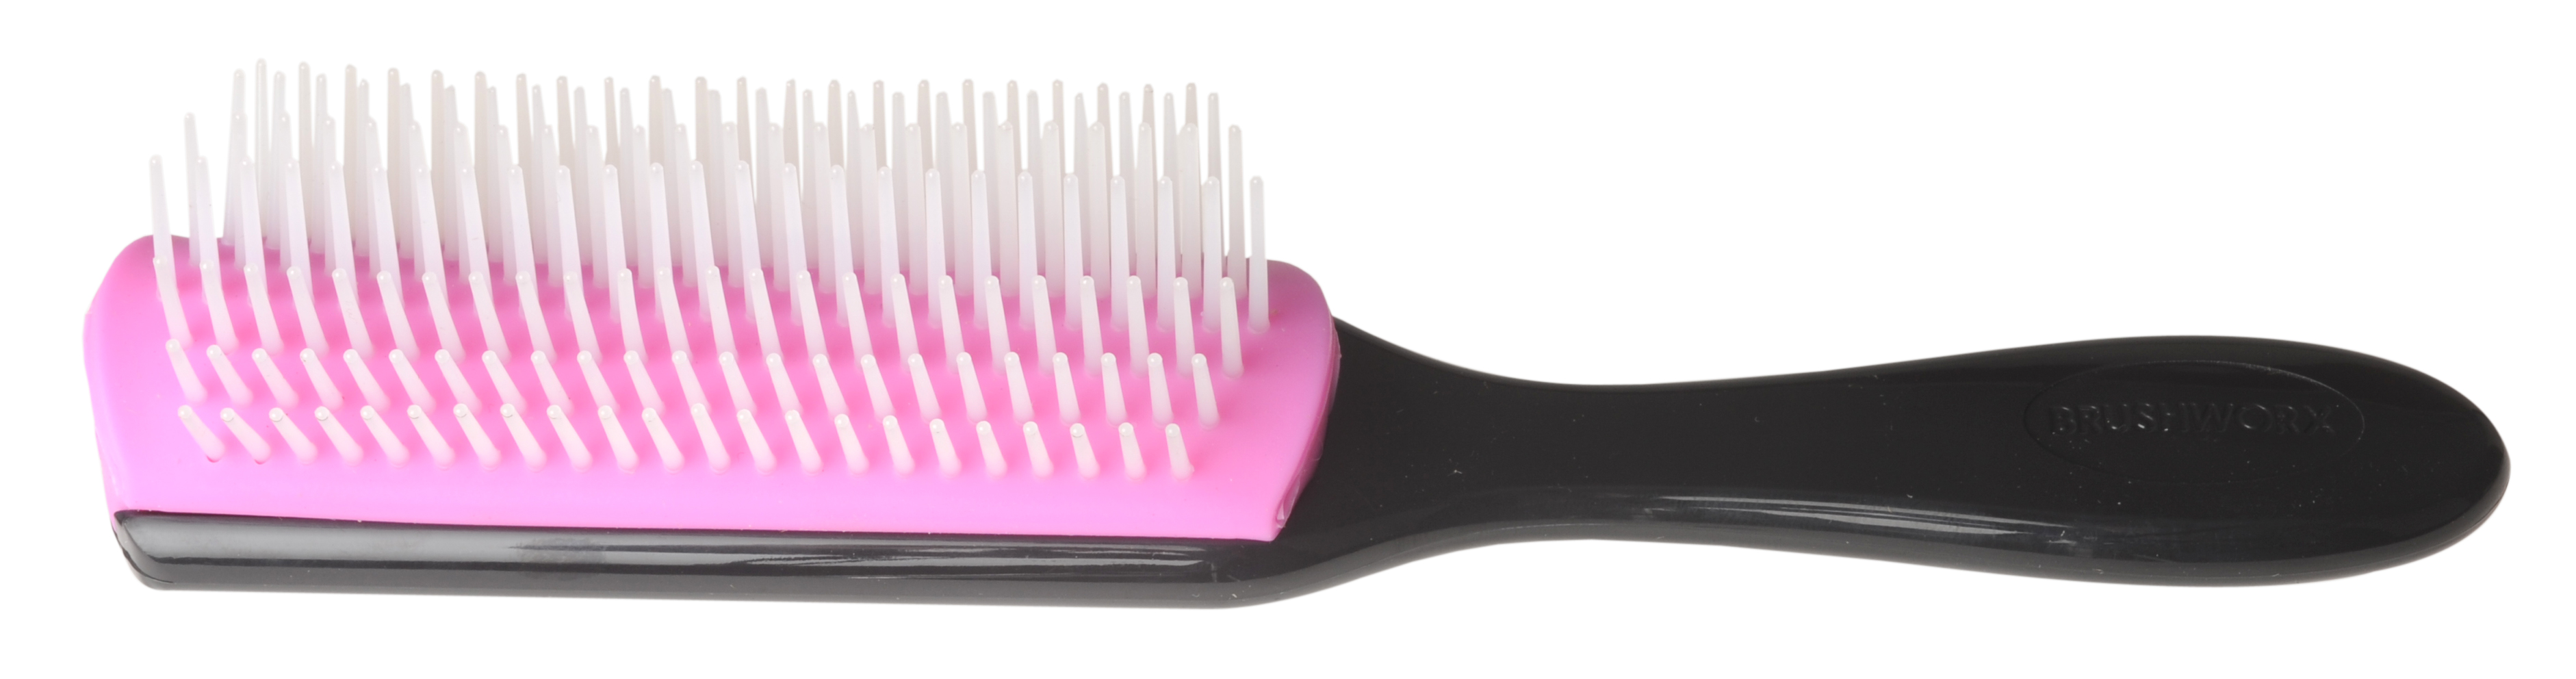 Silicone hair brush